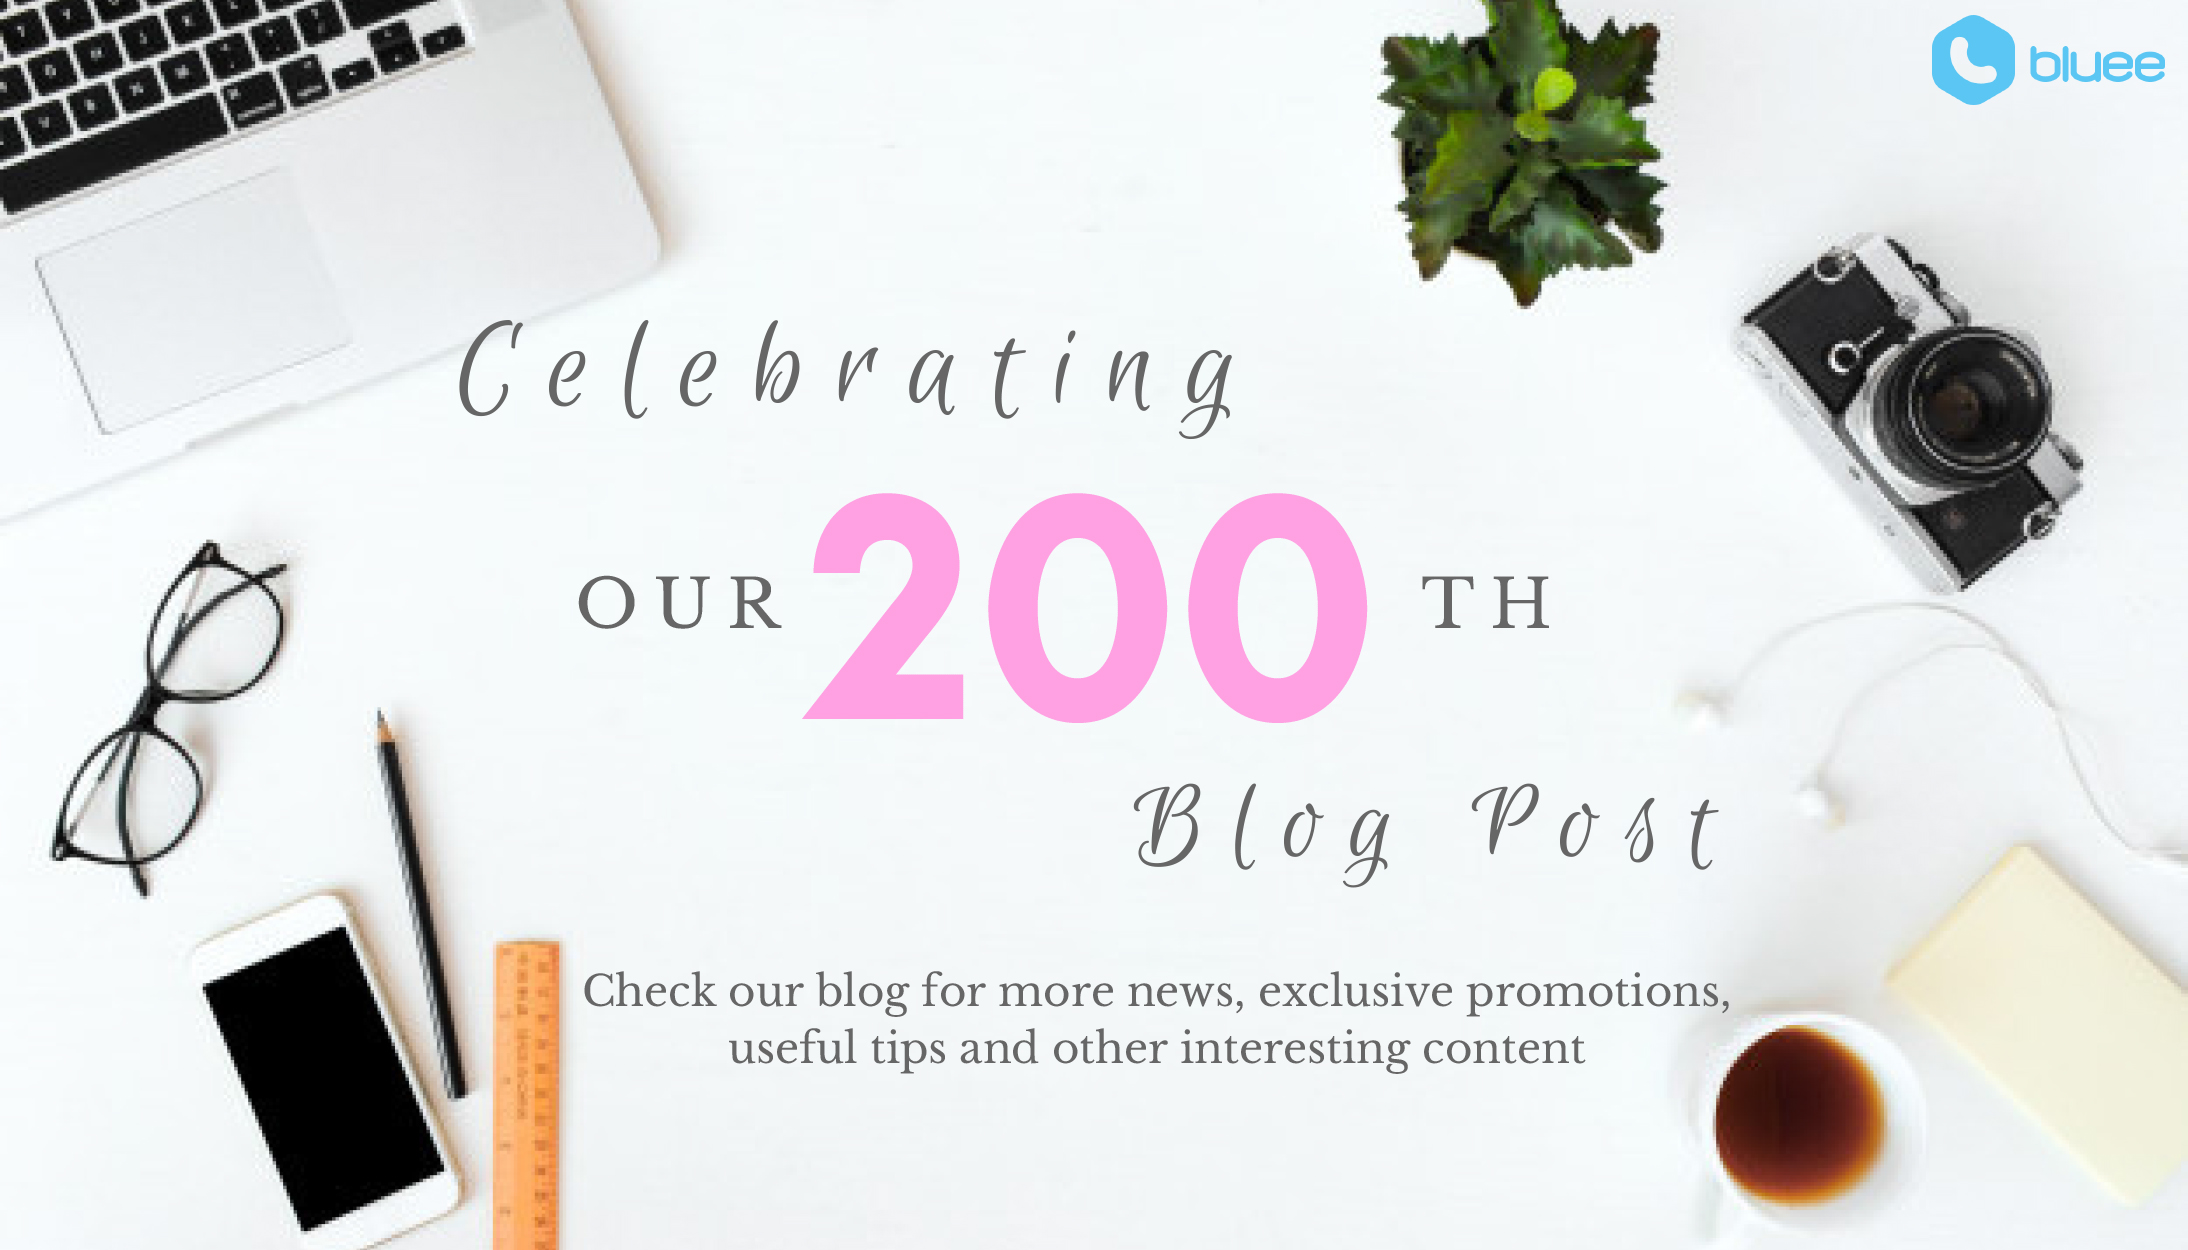 Woo Hoo! It's our 200th blog post!